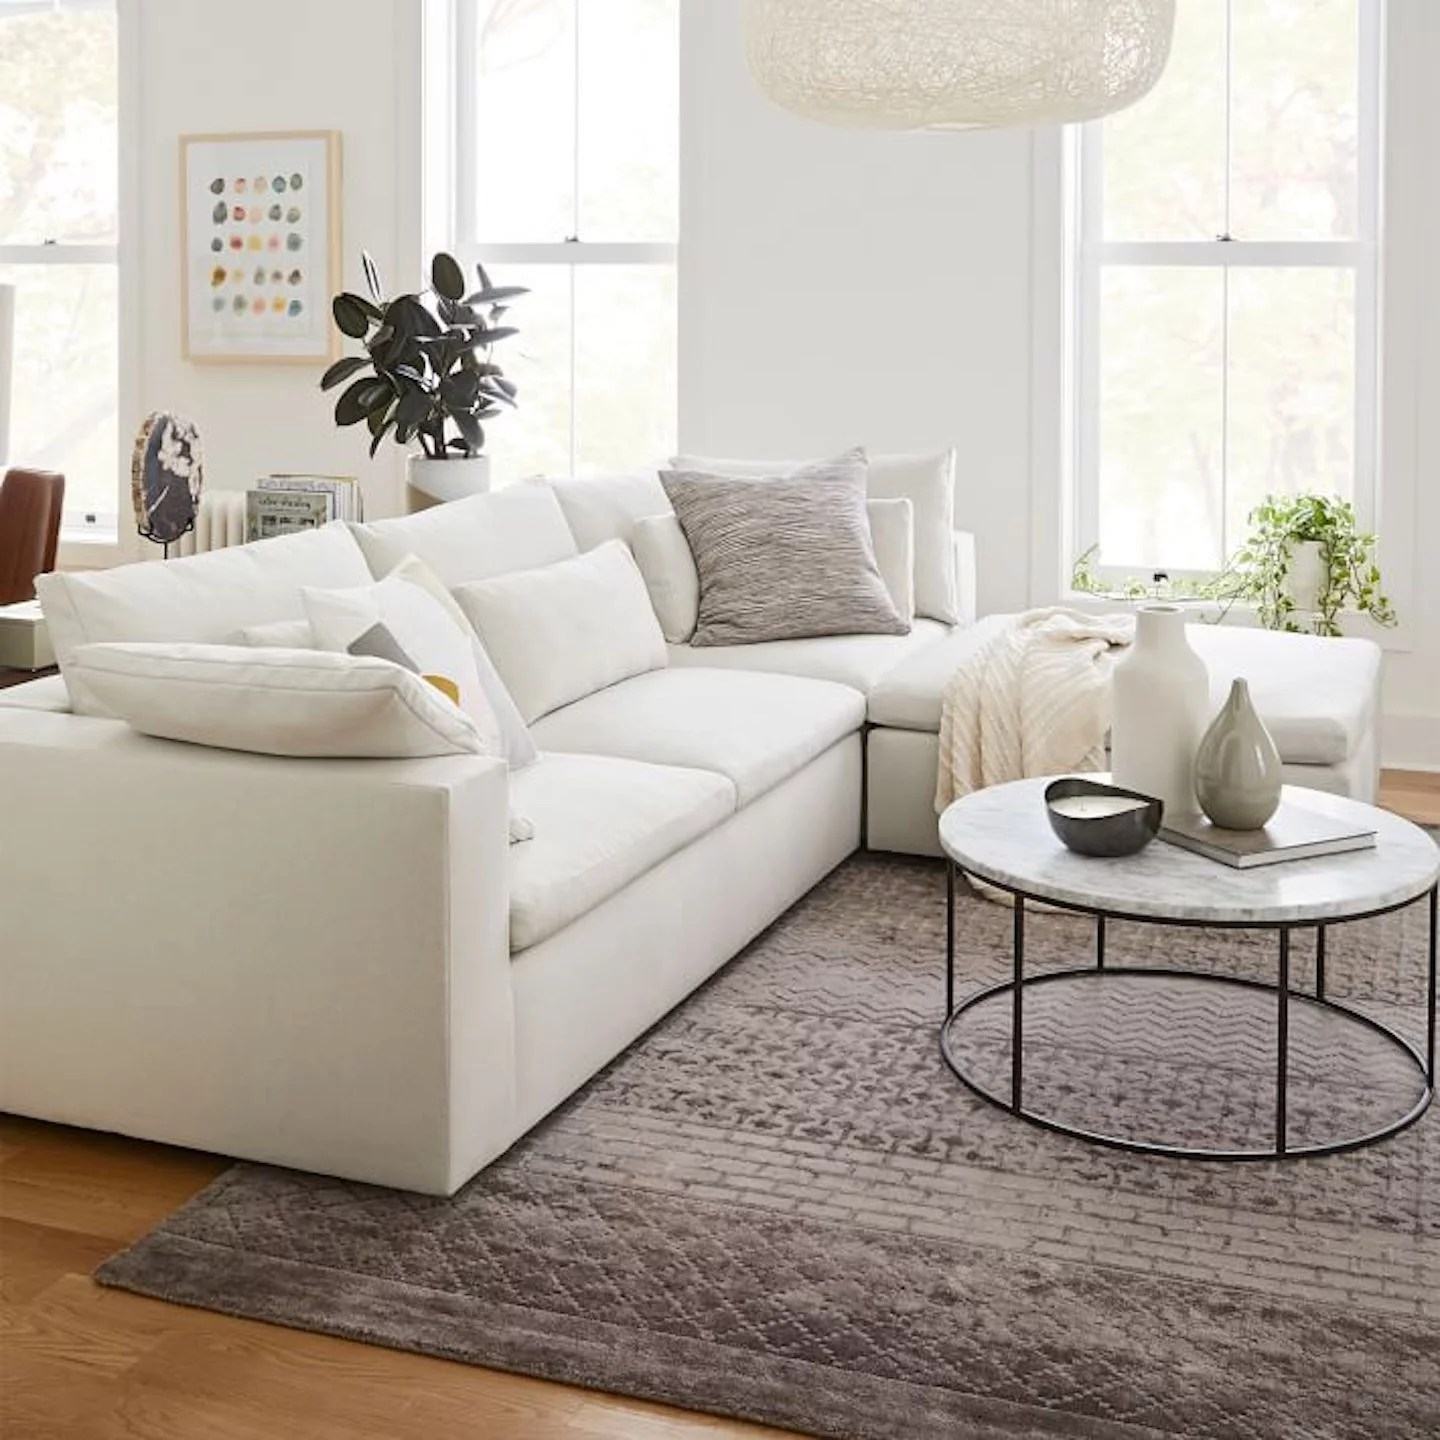 Best And Most Comfortable Sectional Sofas 2021 Popsugar Home